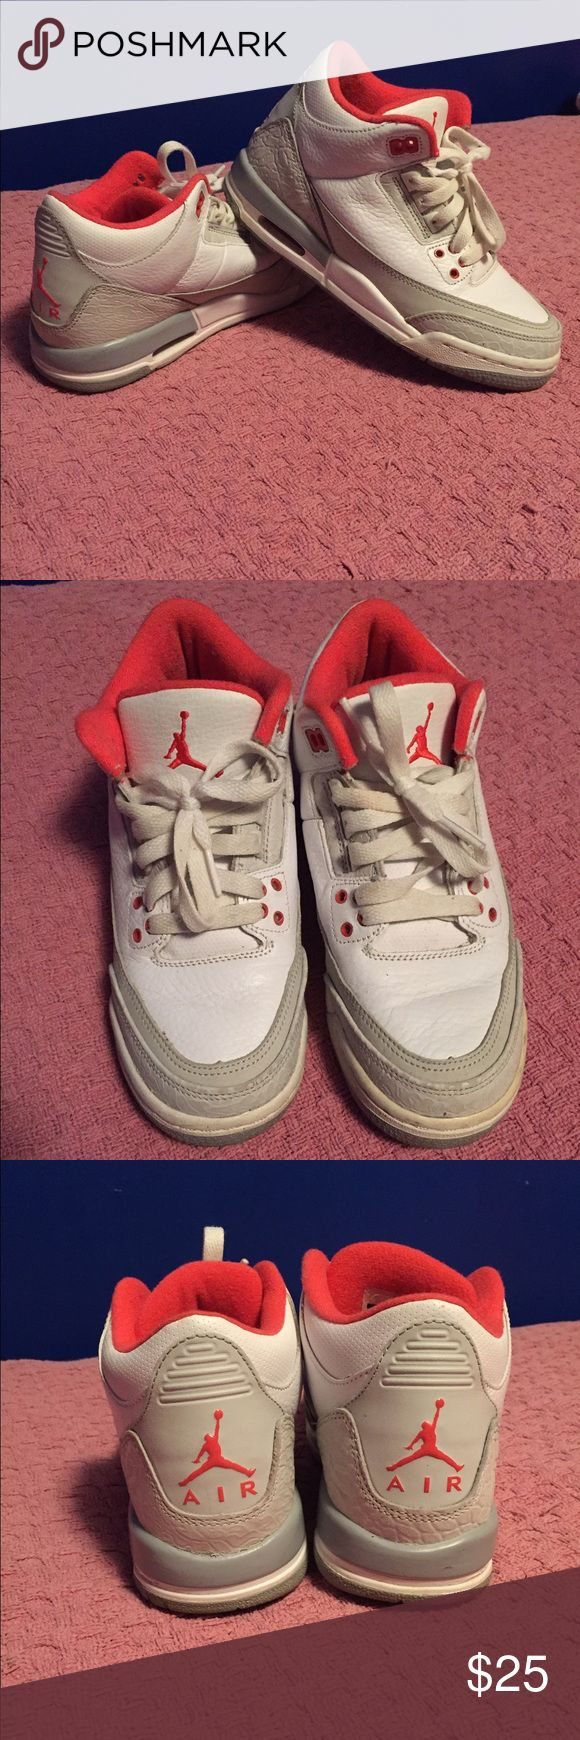 Jordan sneakers Coral and white Jordan sneakers, lightly warn, good condition Shoes Sneakers